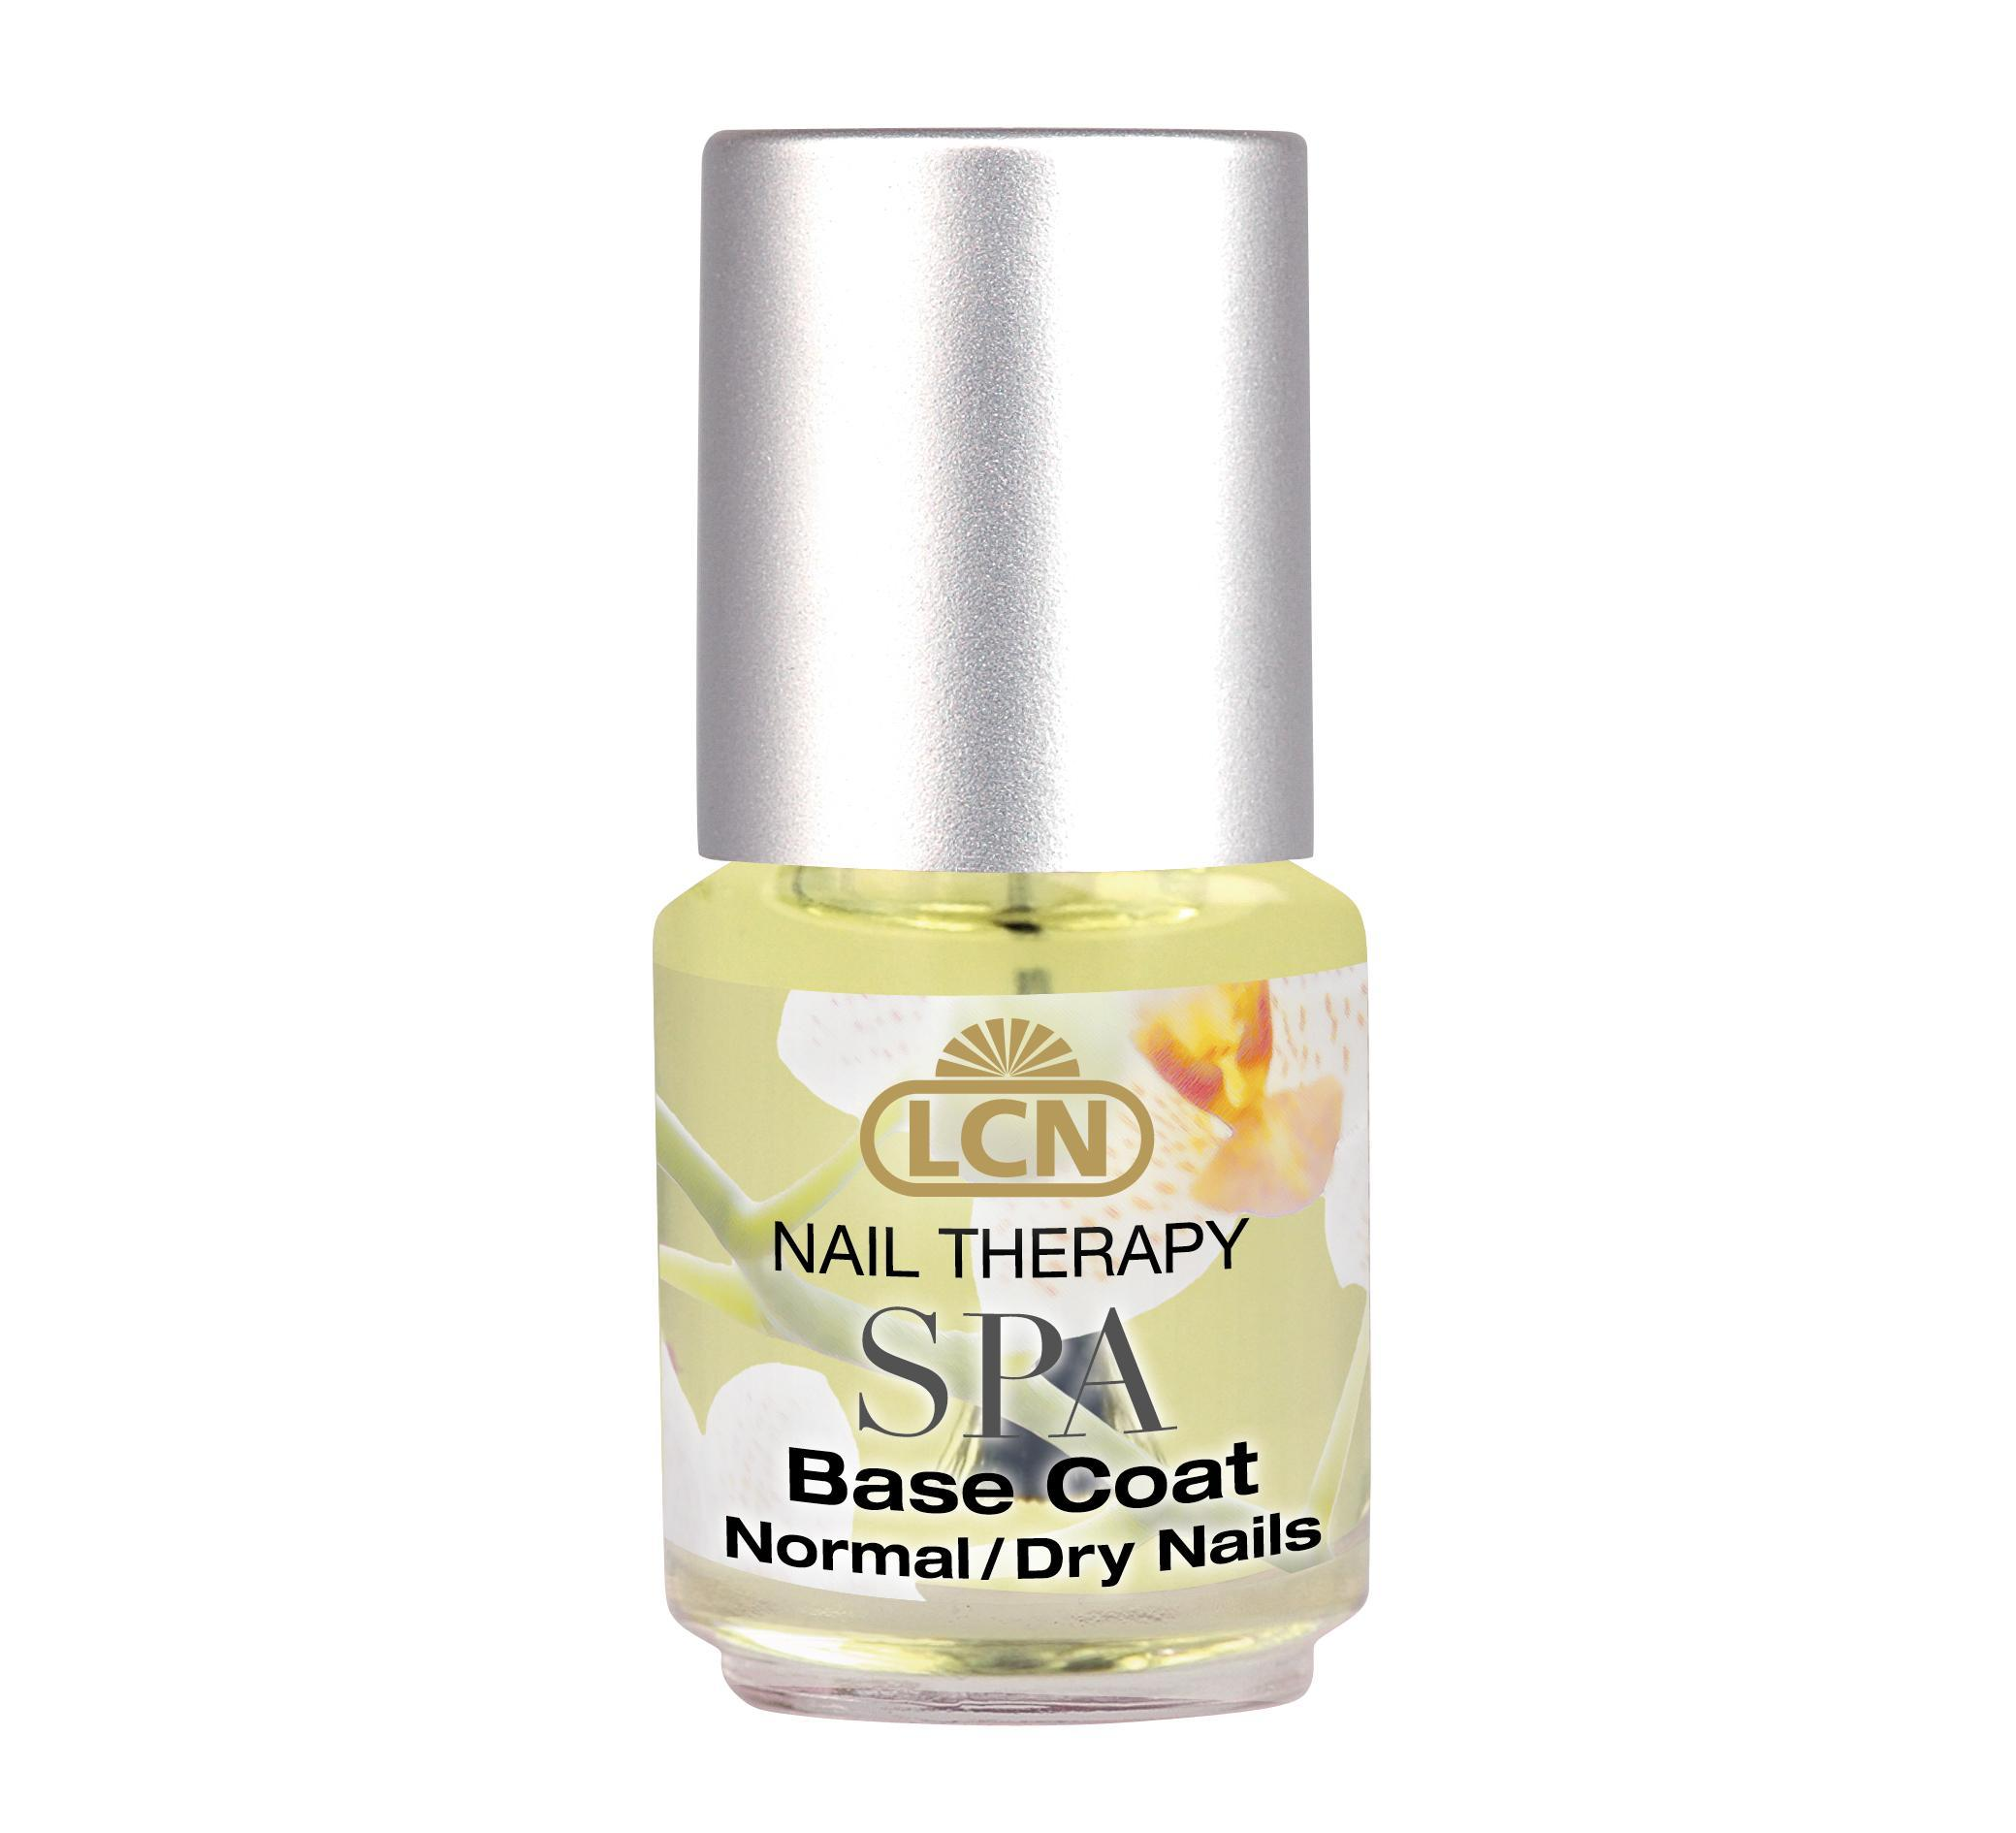 SPA Nail Therapy Base Coat, normal/dry nails